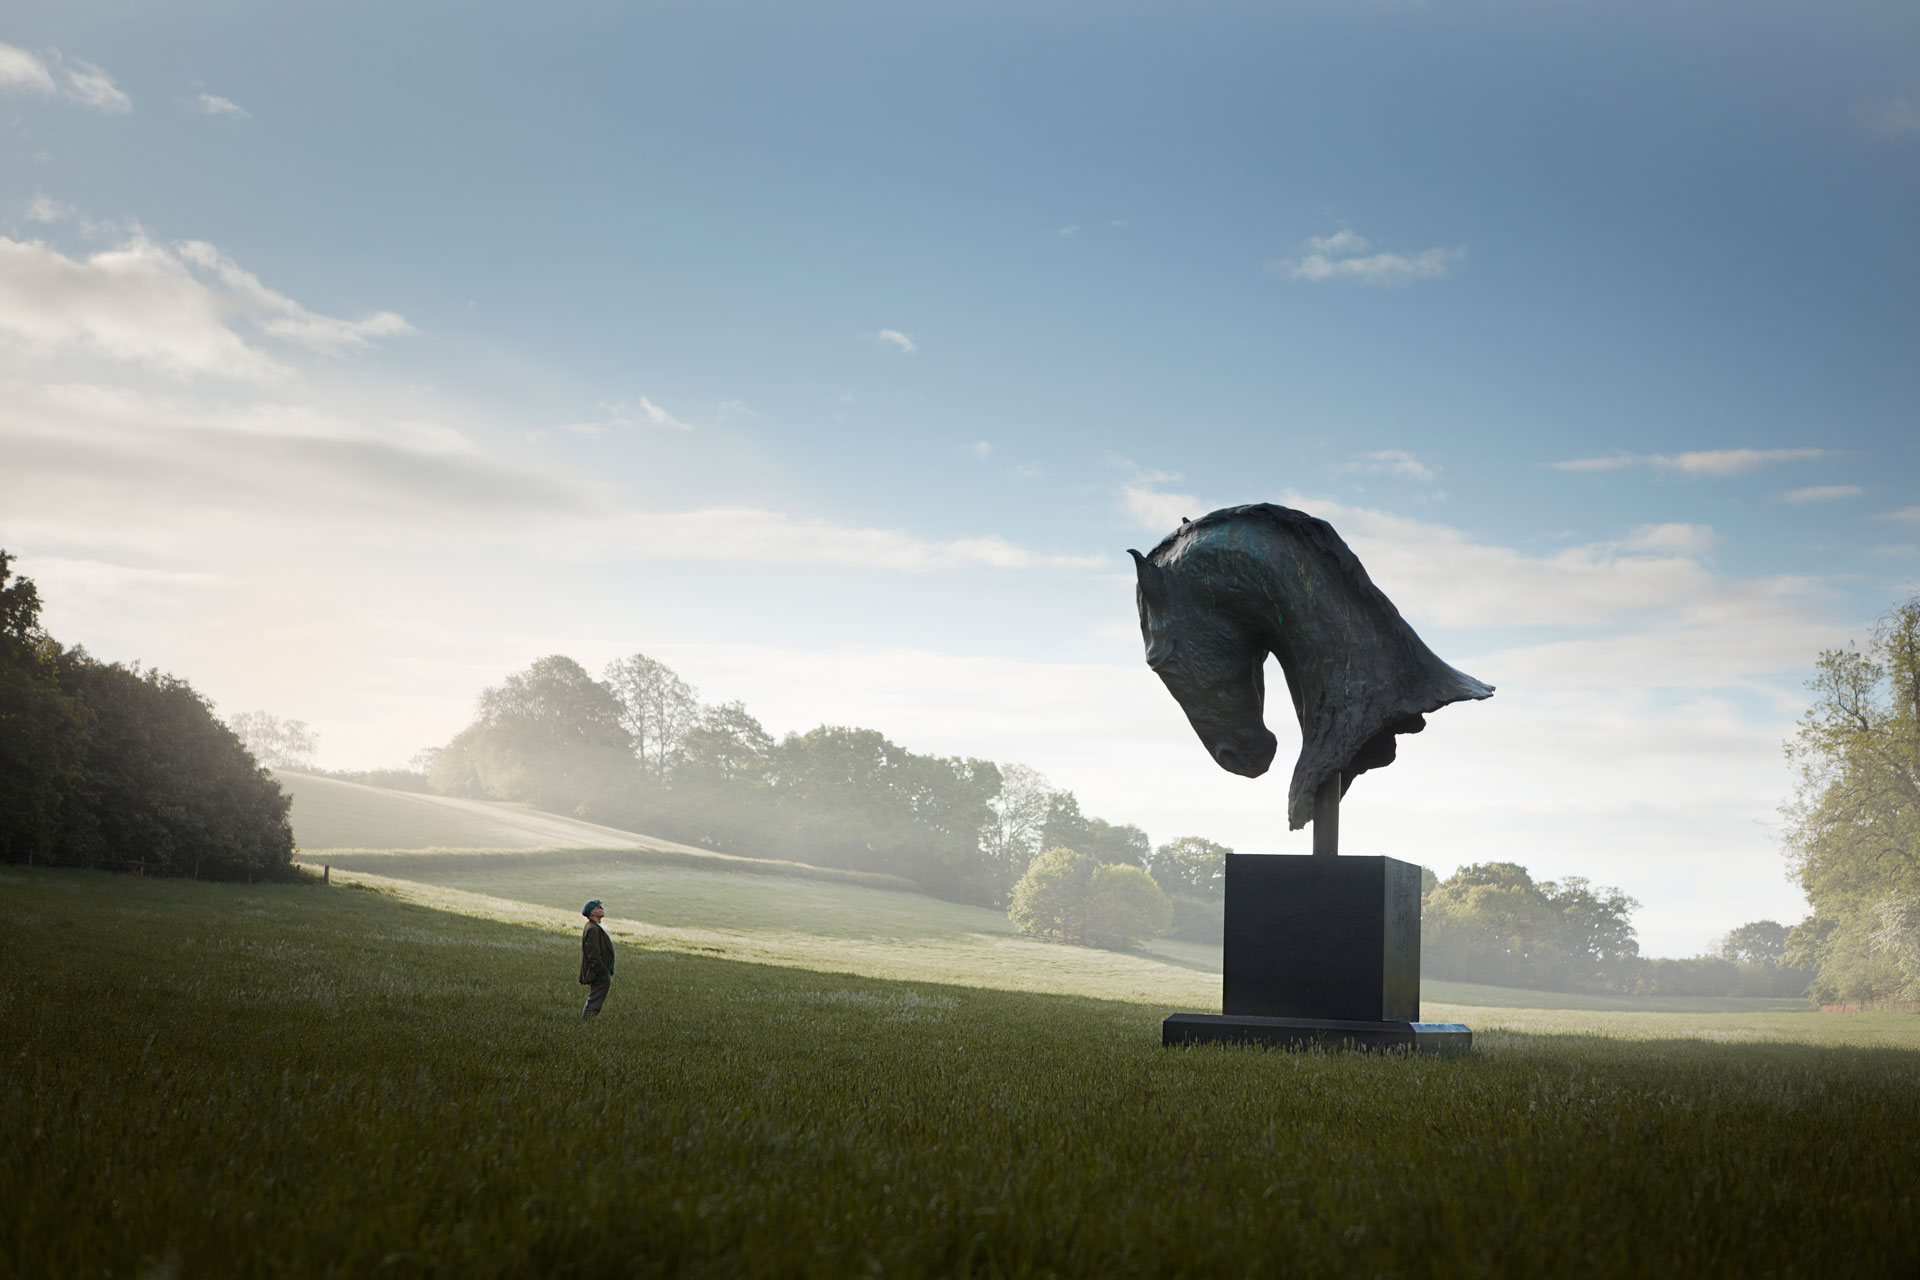 The Art to See at Royal Ascot